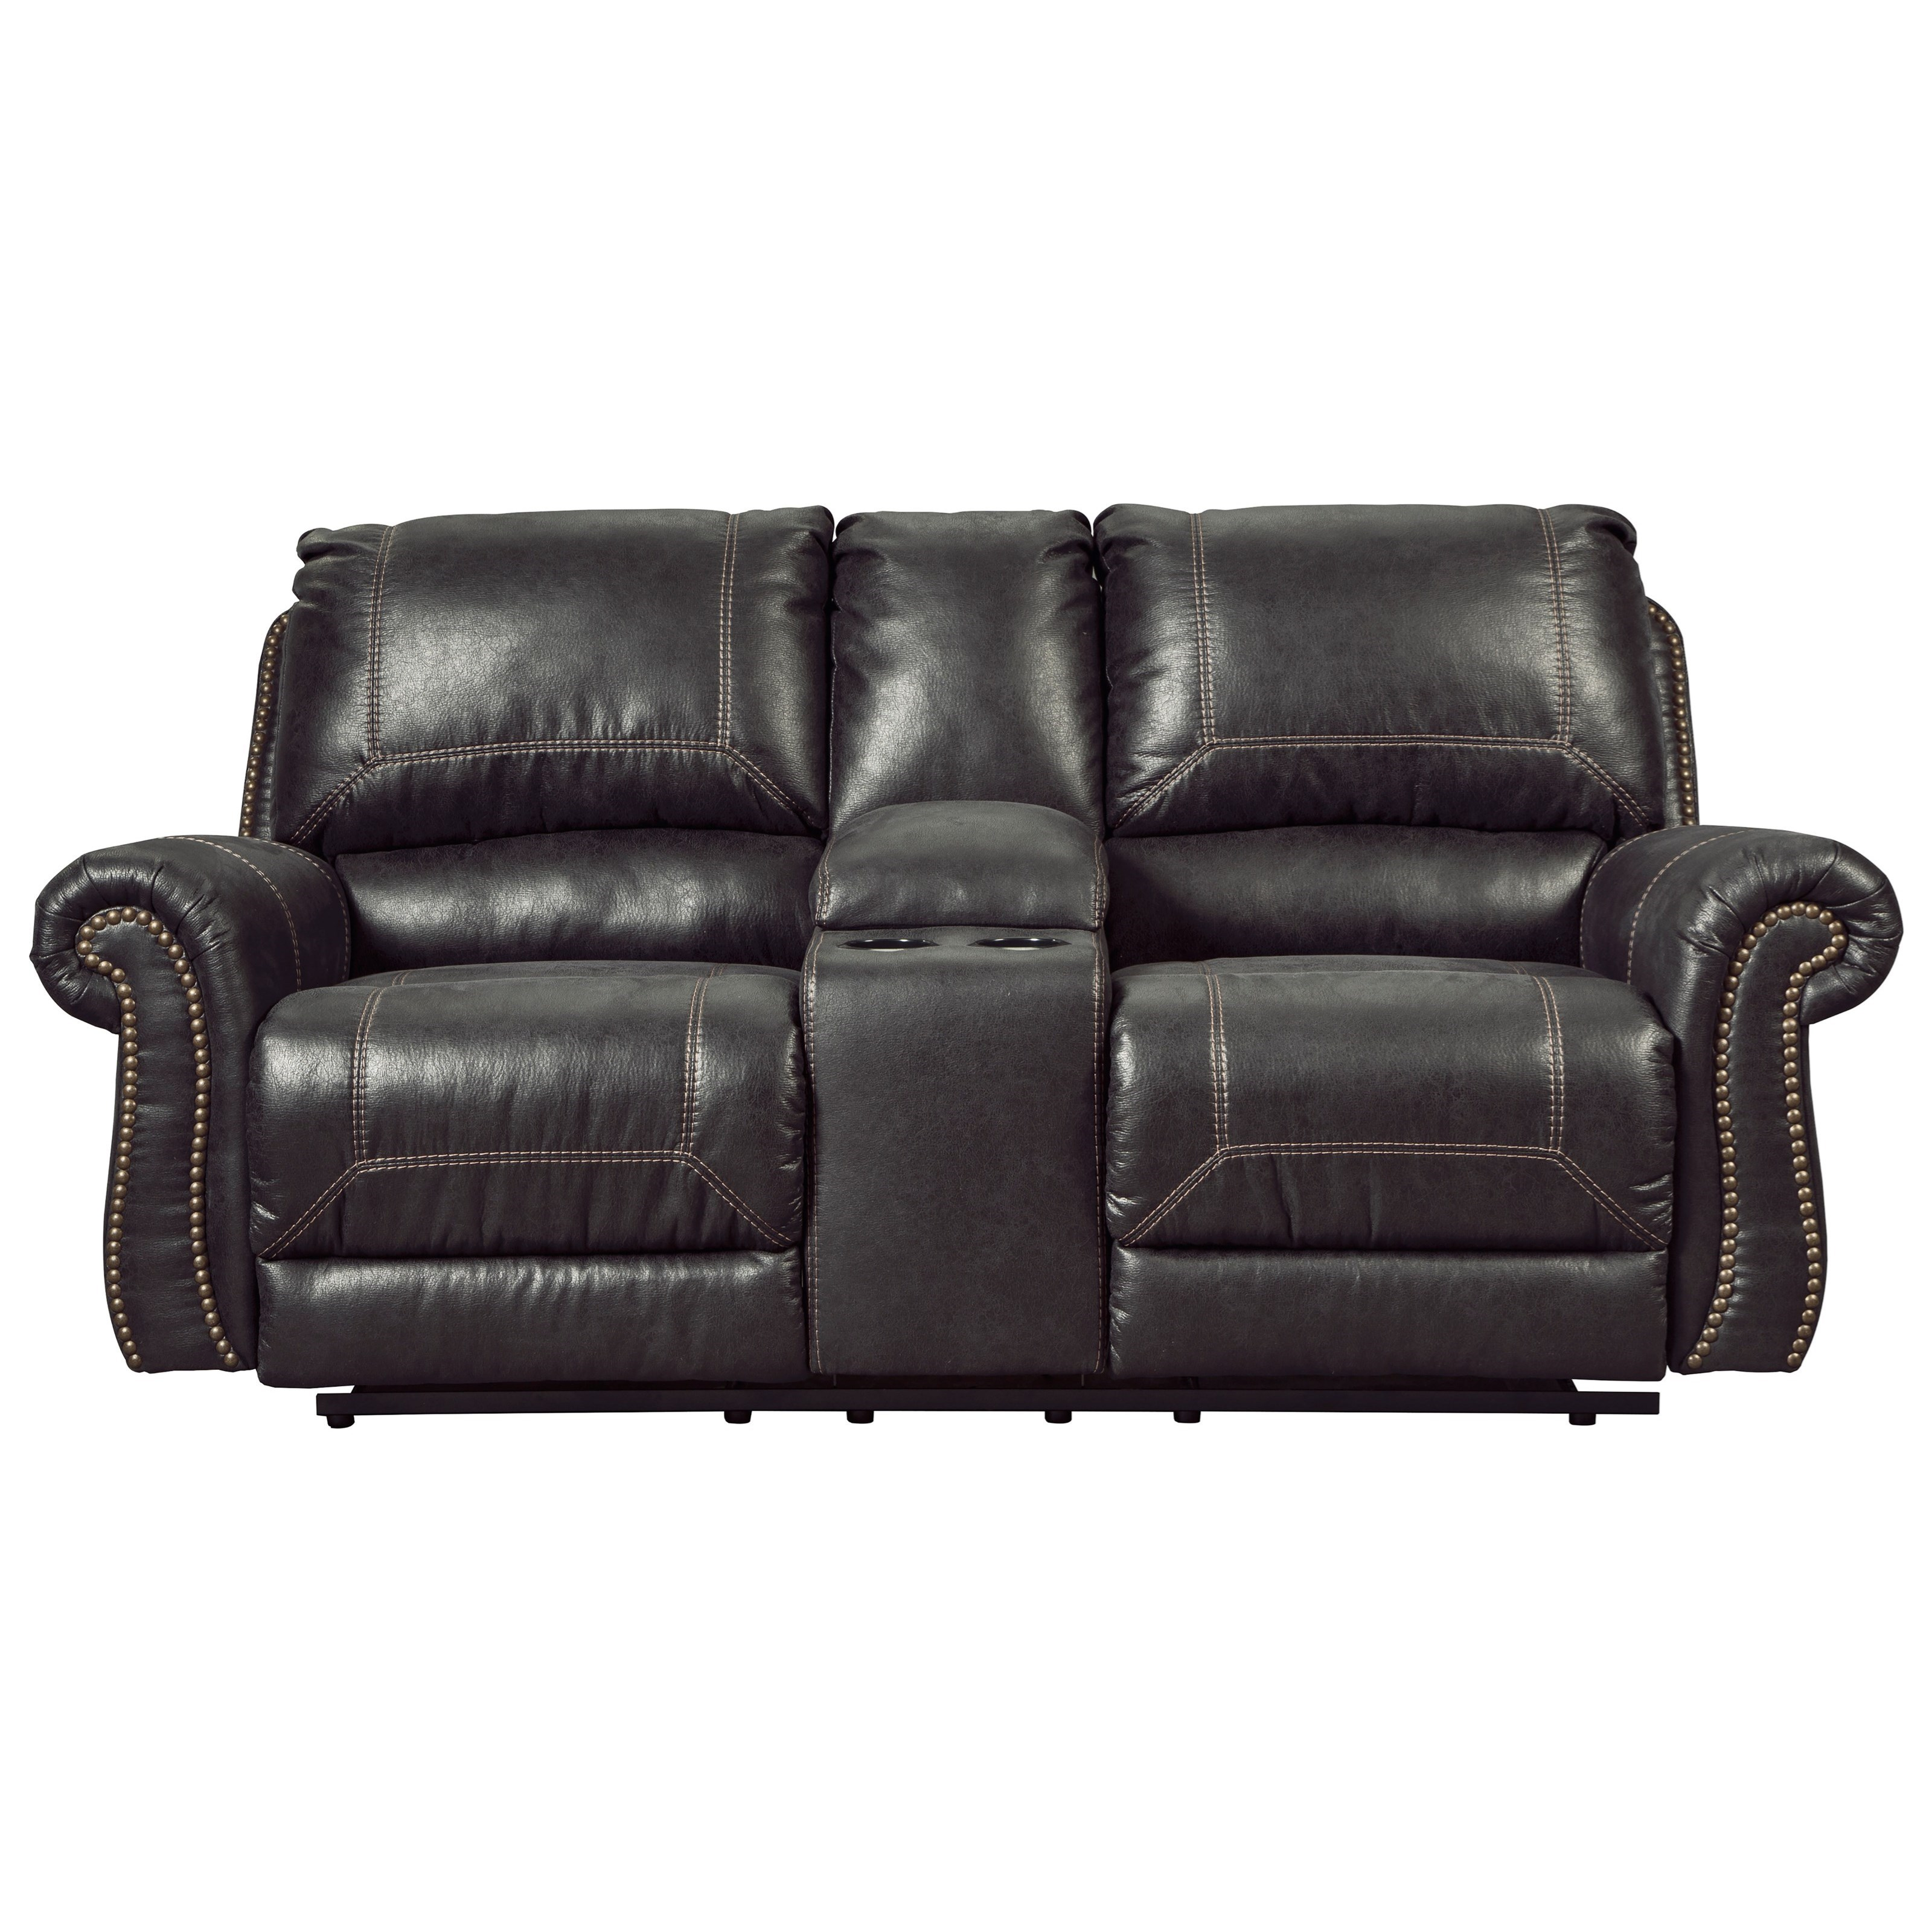 Signature Design by Ashley Milhaven Double Reclining Loveseat w/ Console - Item Number: 6330394